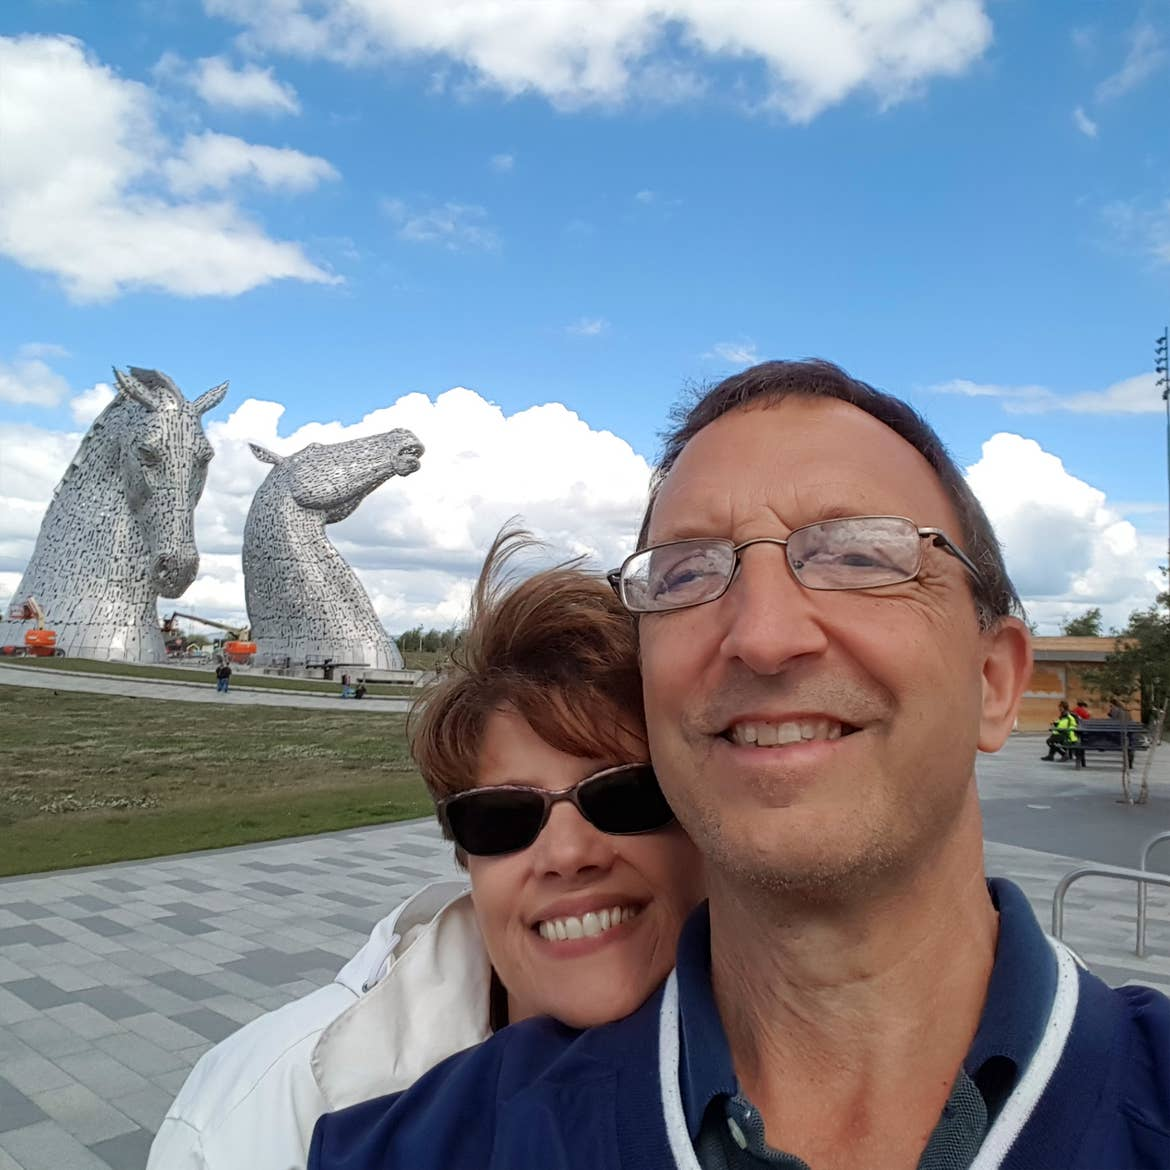 A caucasian man (right) wearing a navy windbreaker and a caucasian woman (left) standing behind him in a white windbreaker jacket stand in front of the Kelpies in Falkirk, Scotland.